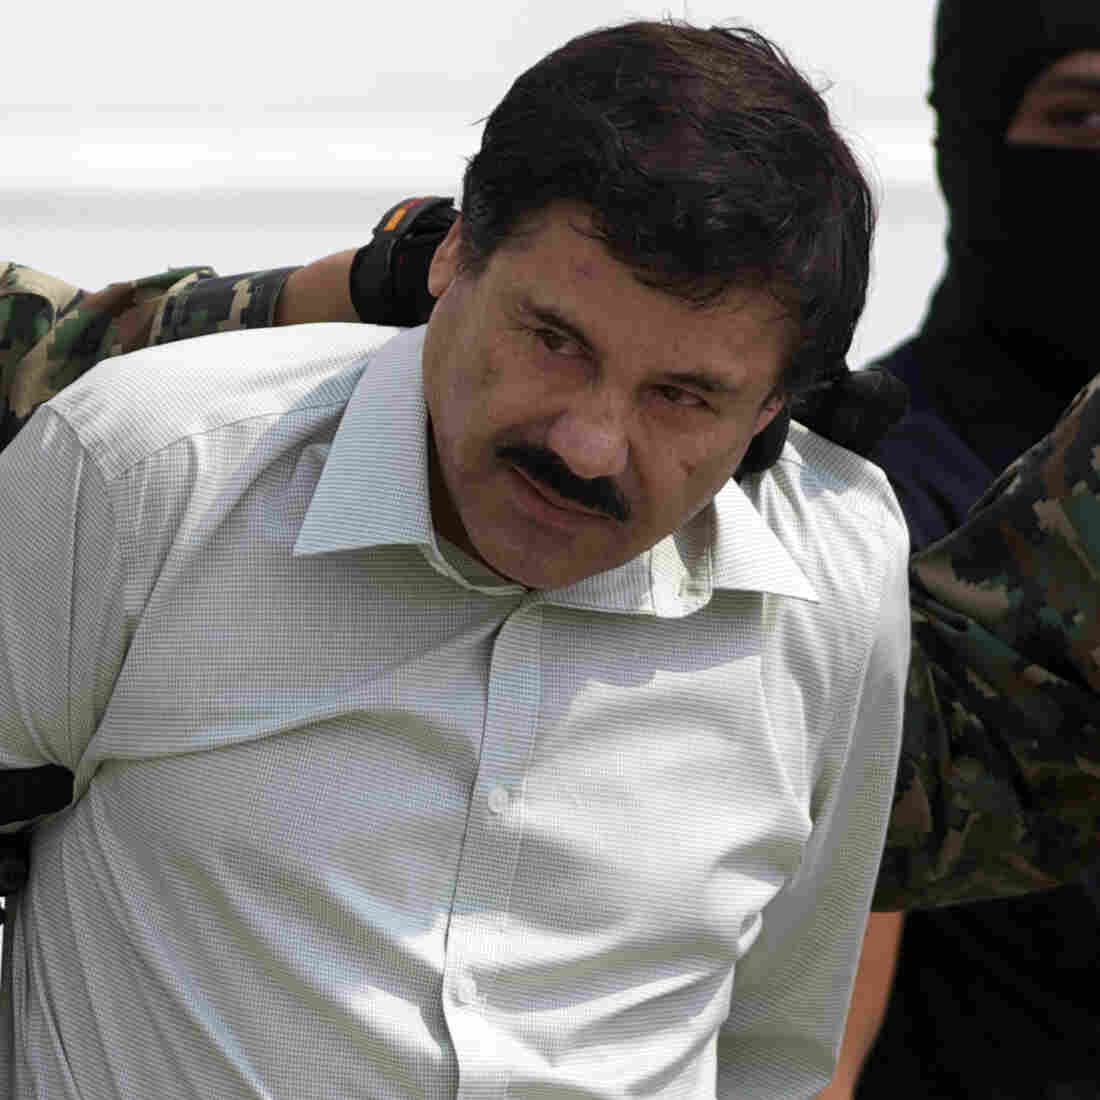 Mexican Drug Cartel Kingpin Captured In Joint U.S.-Mexico Raid